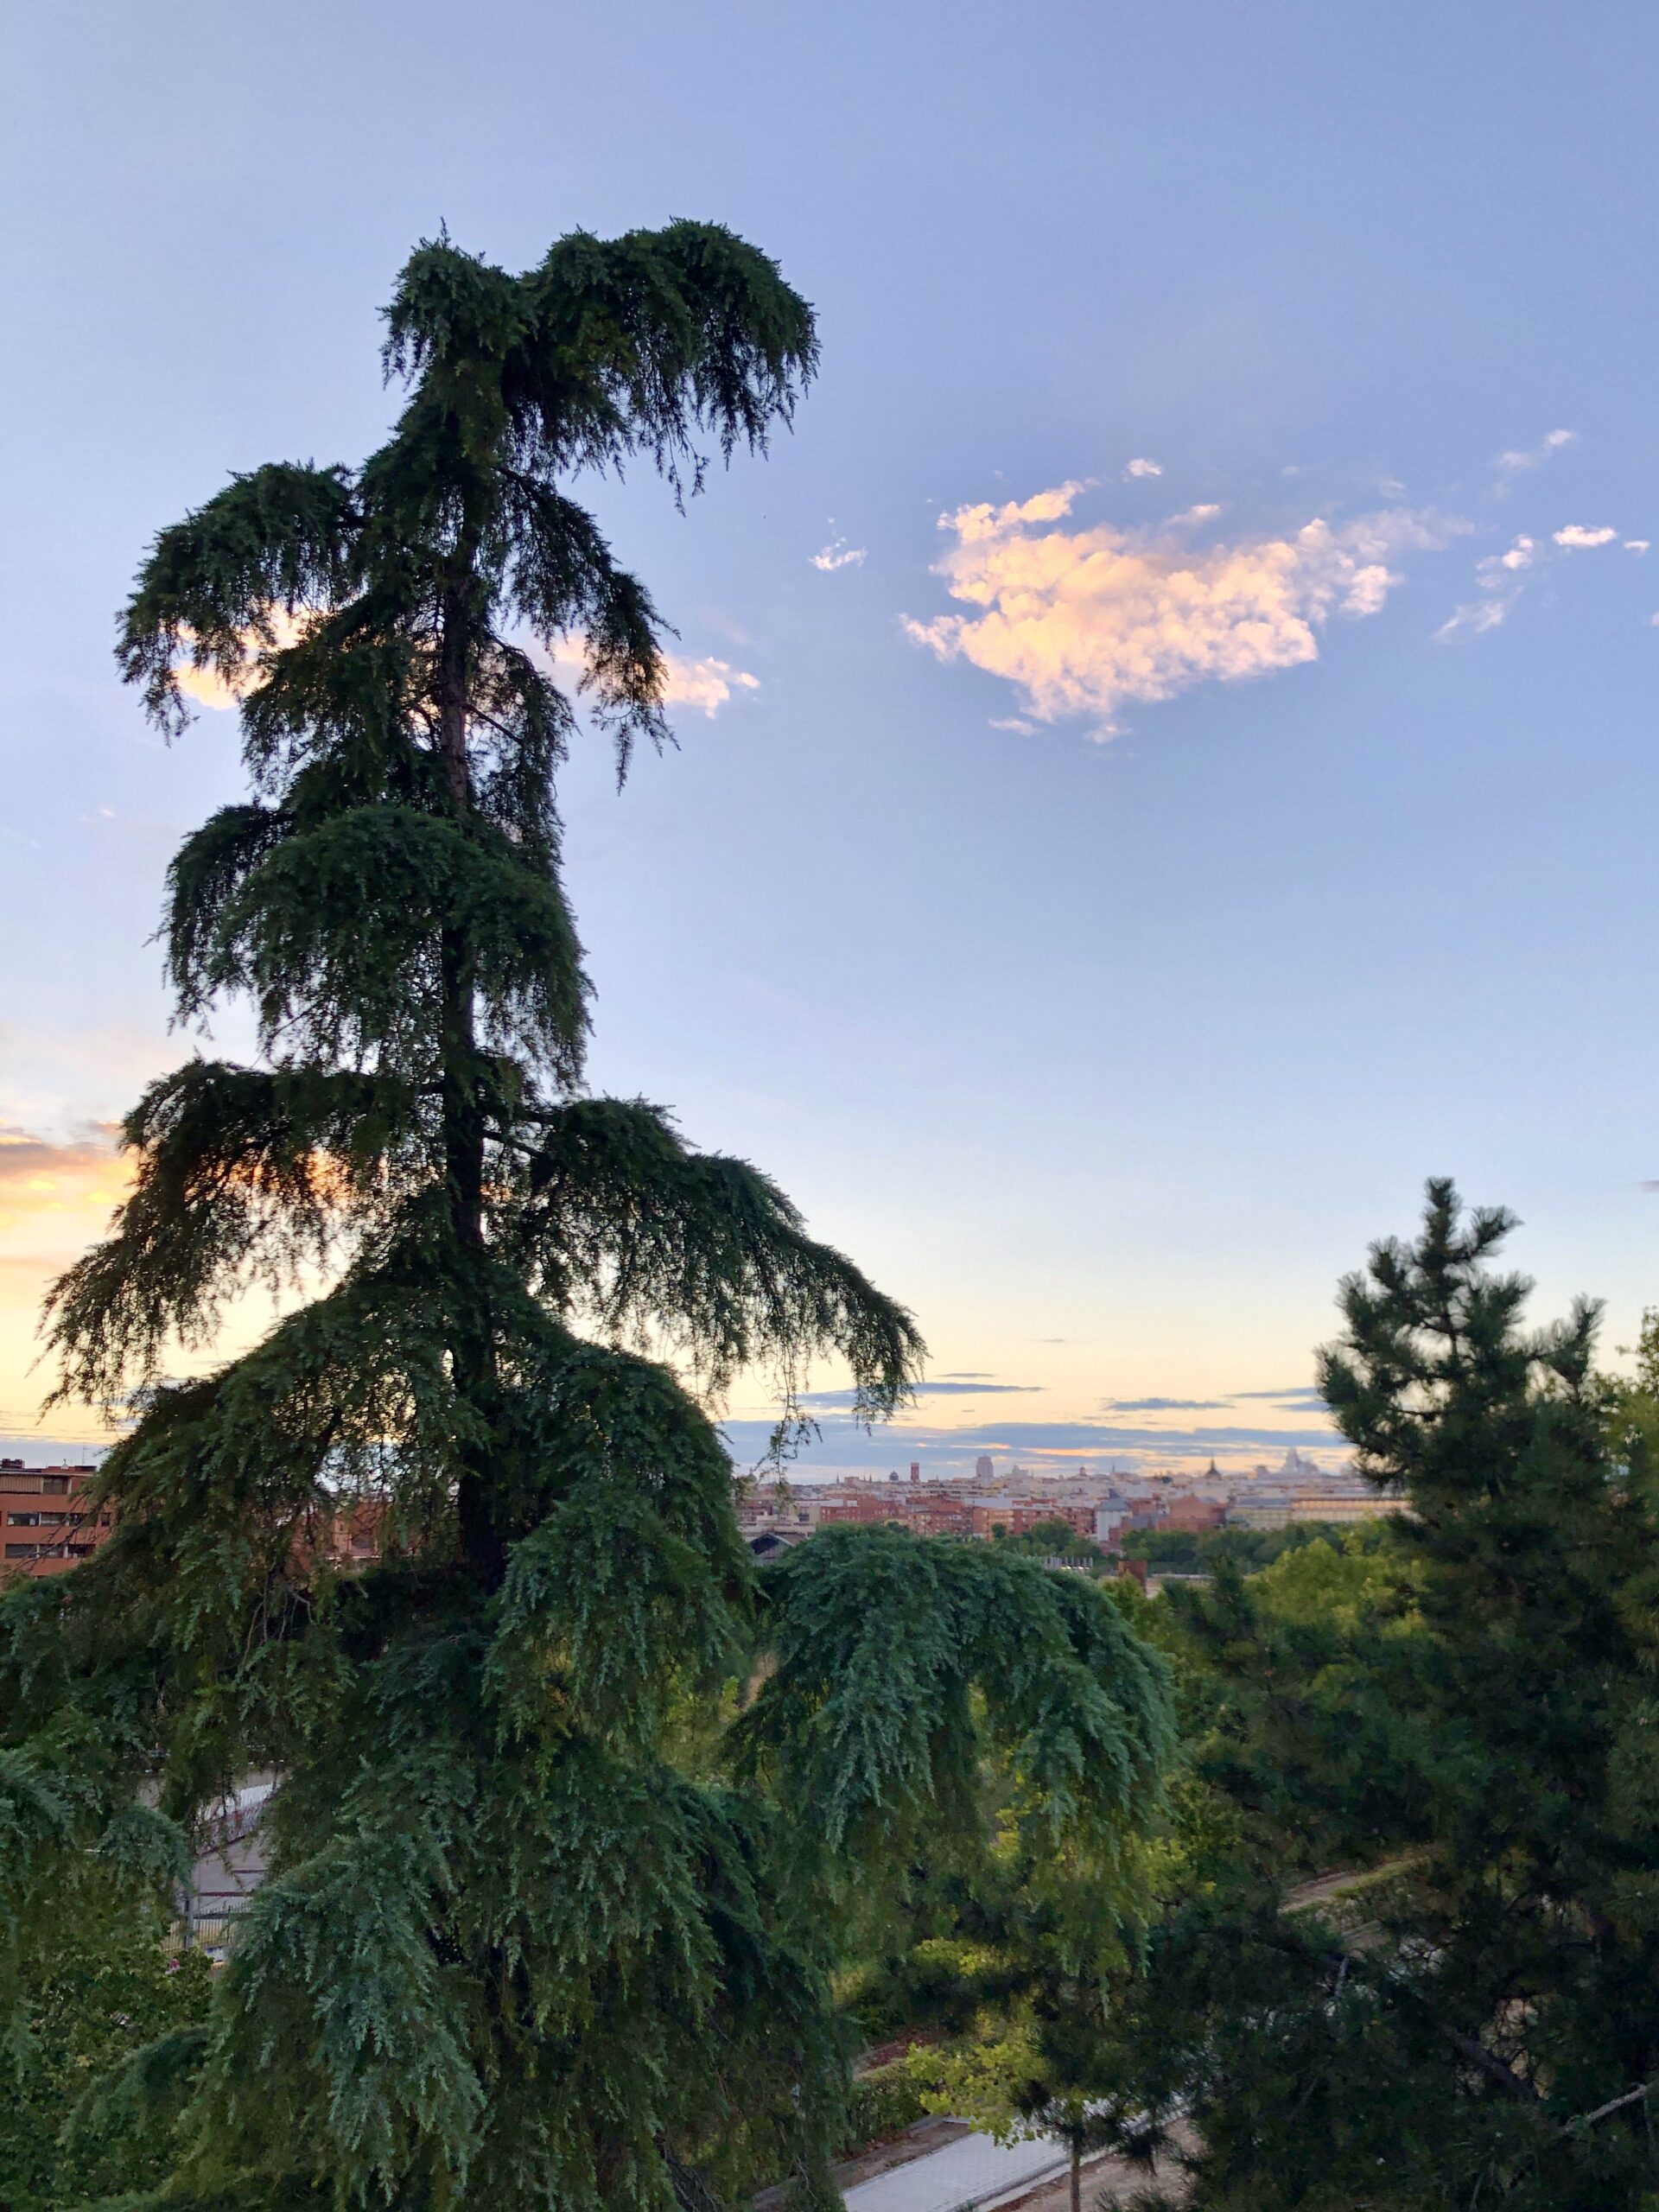 A tree in the foreground with the Madrid skyline in the background.